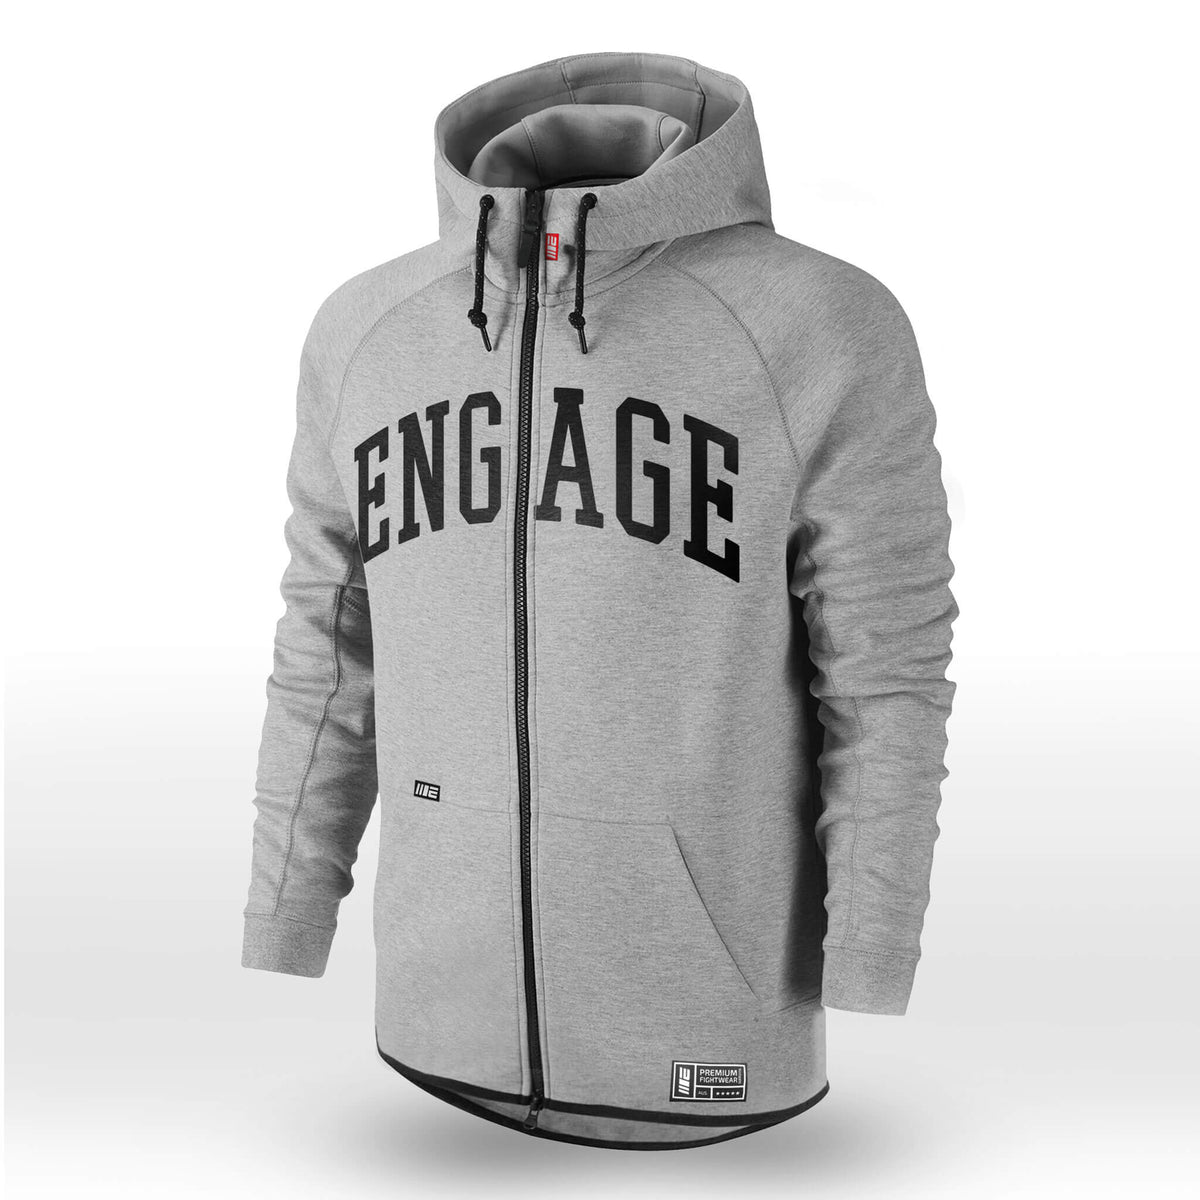 Engage Arch Zip-Up Hooded Sweatshirt